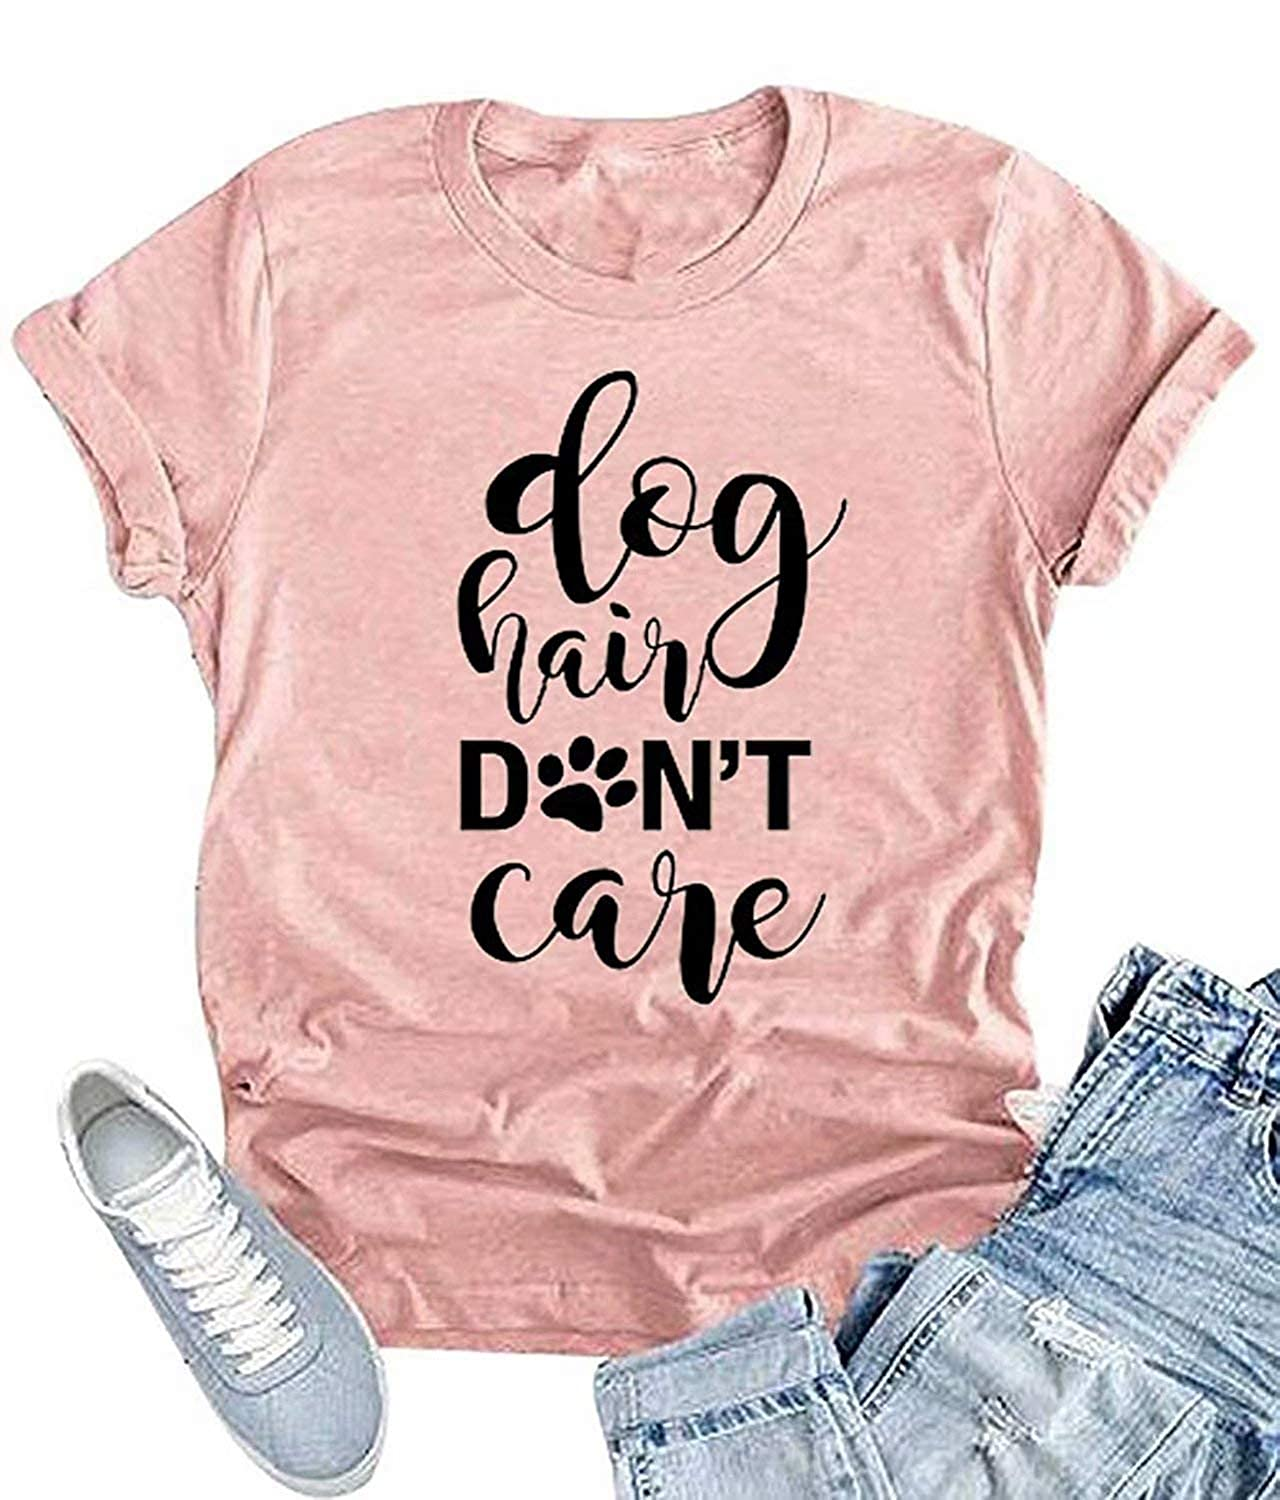 Dog Hair Don't Care T Shirt for Women Short Sleeve Casual Tops Mother's Day Tees